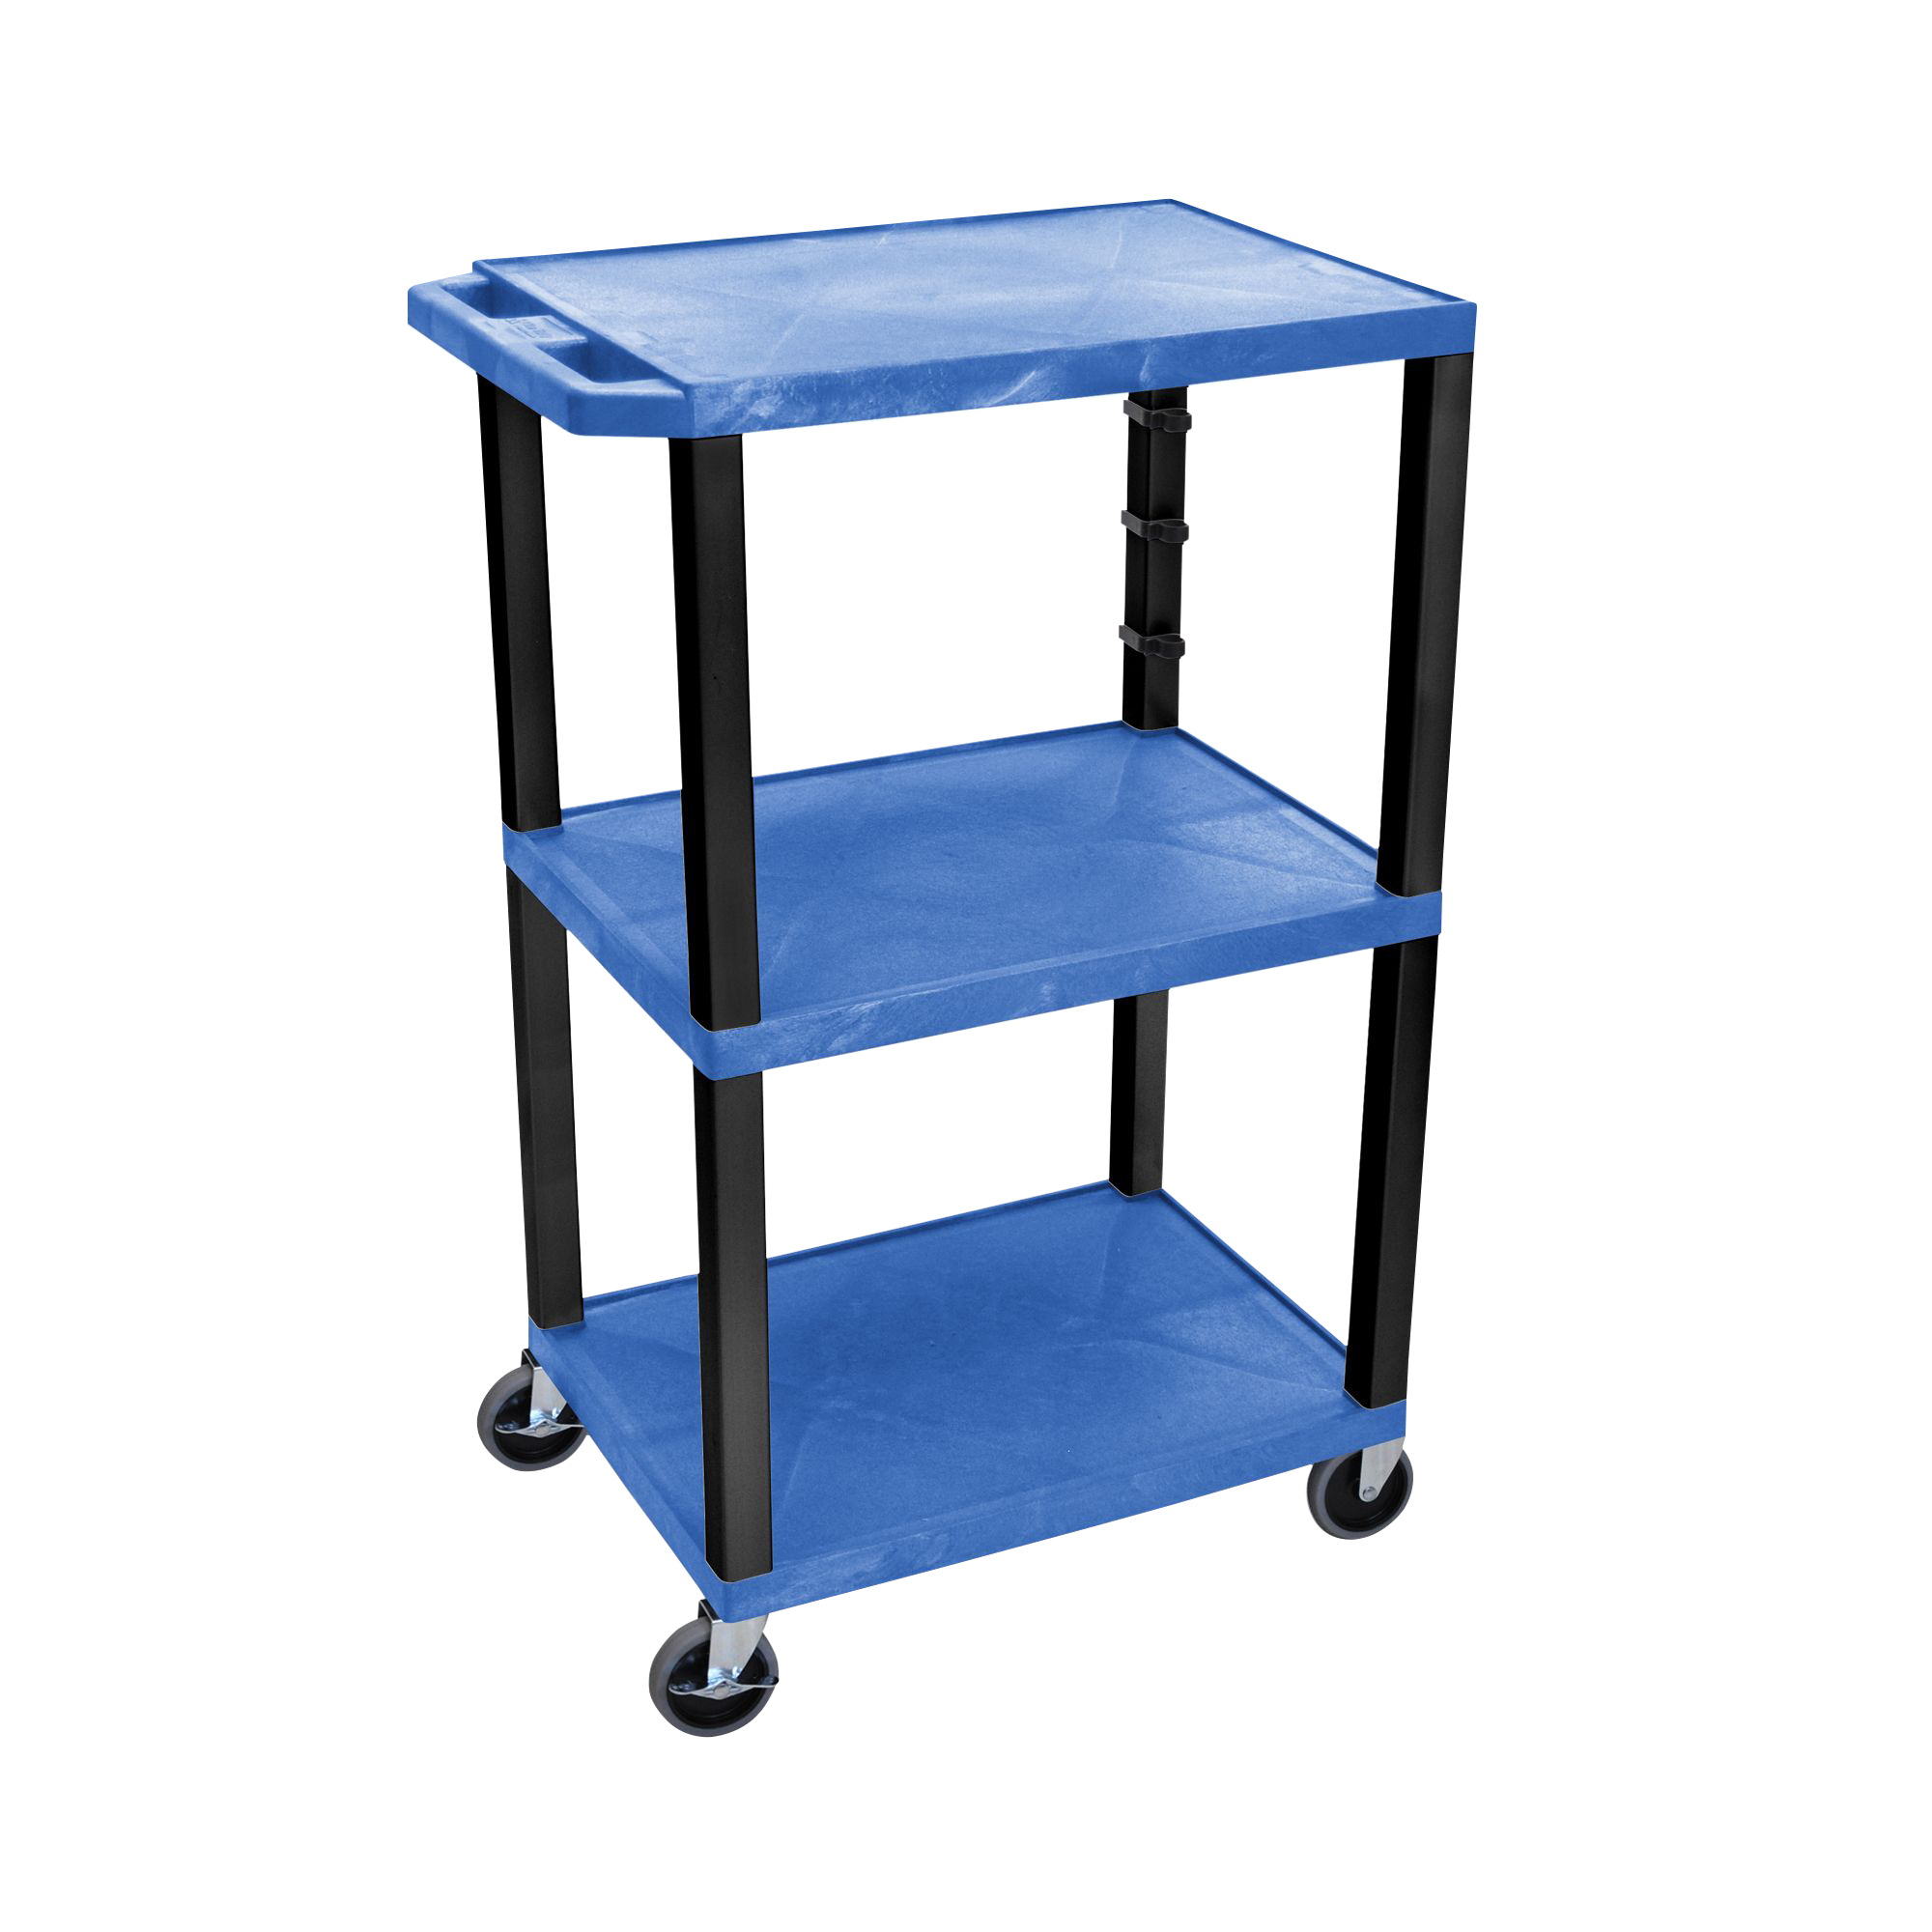 Offex Blue Tuffy Cart 3 Shelves Black Legs